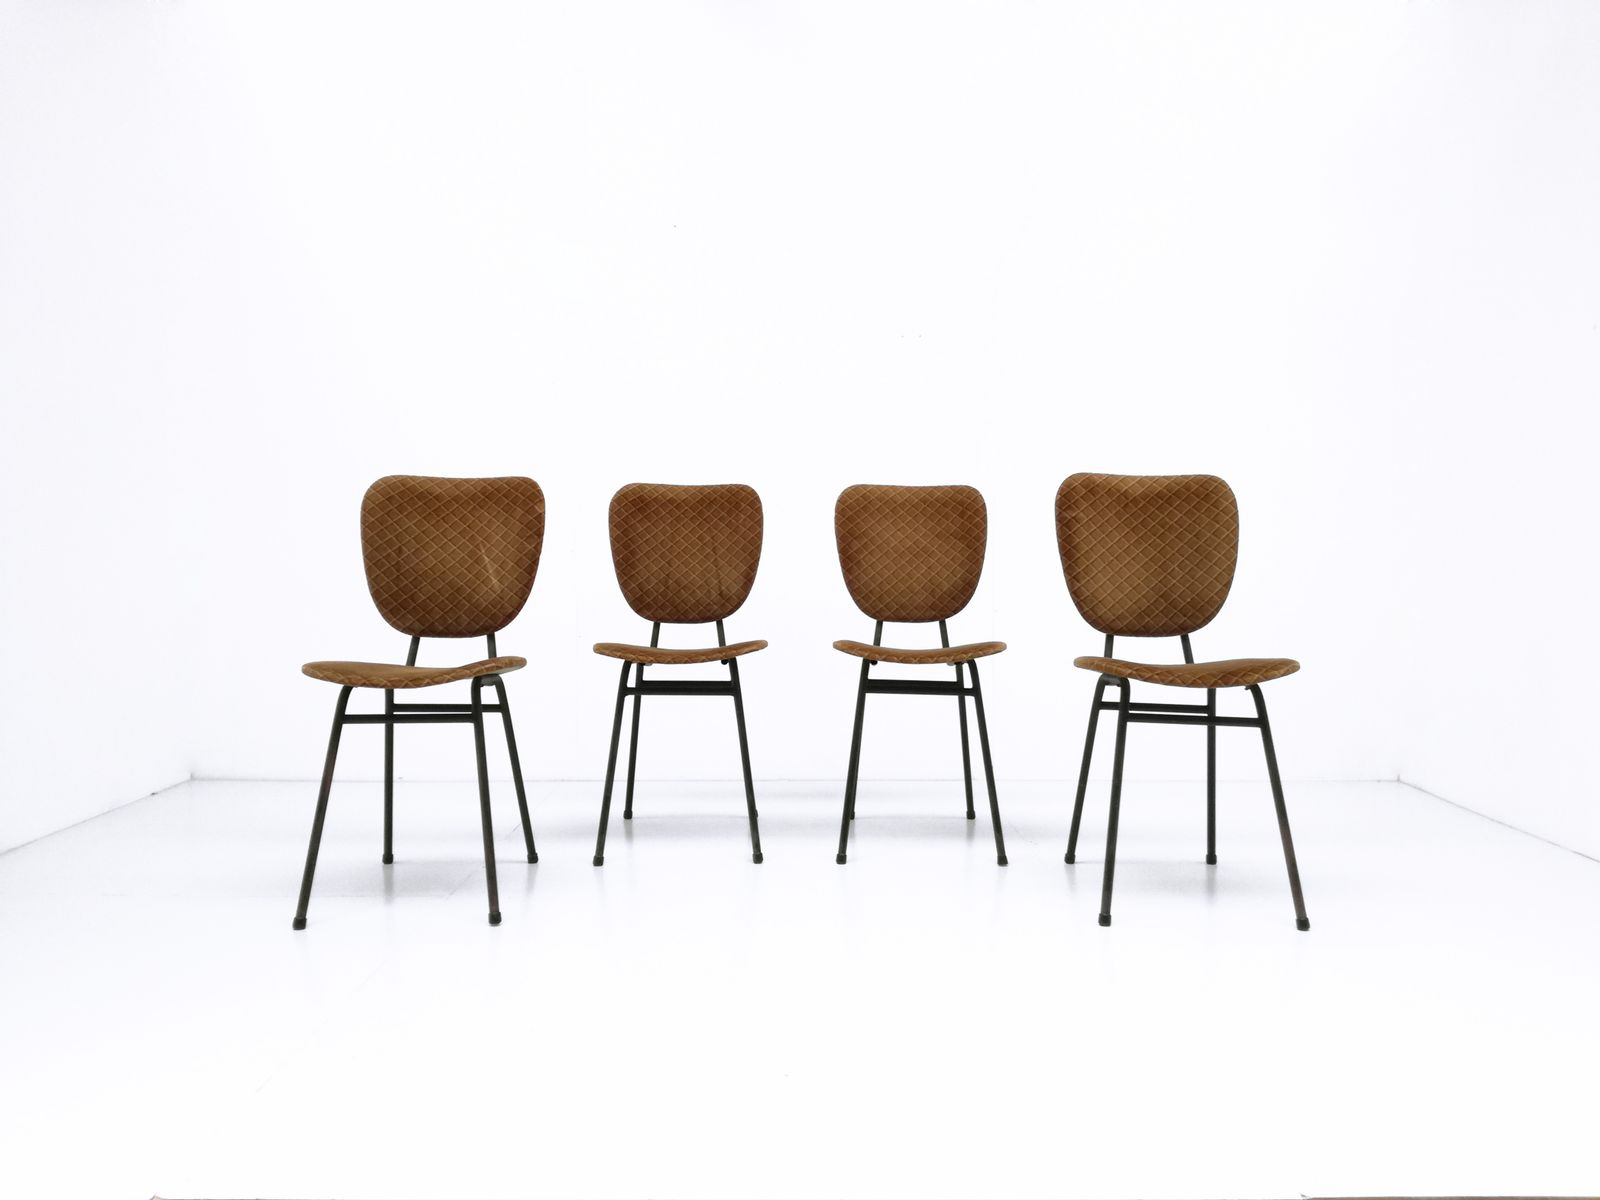 Black steel chairs - Black Lacquered Tubular Steel Chairs 1950s Set Of 4